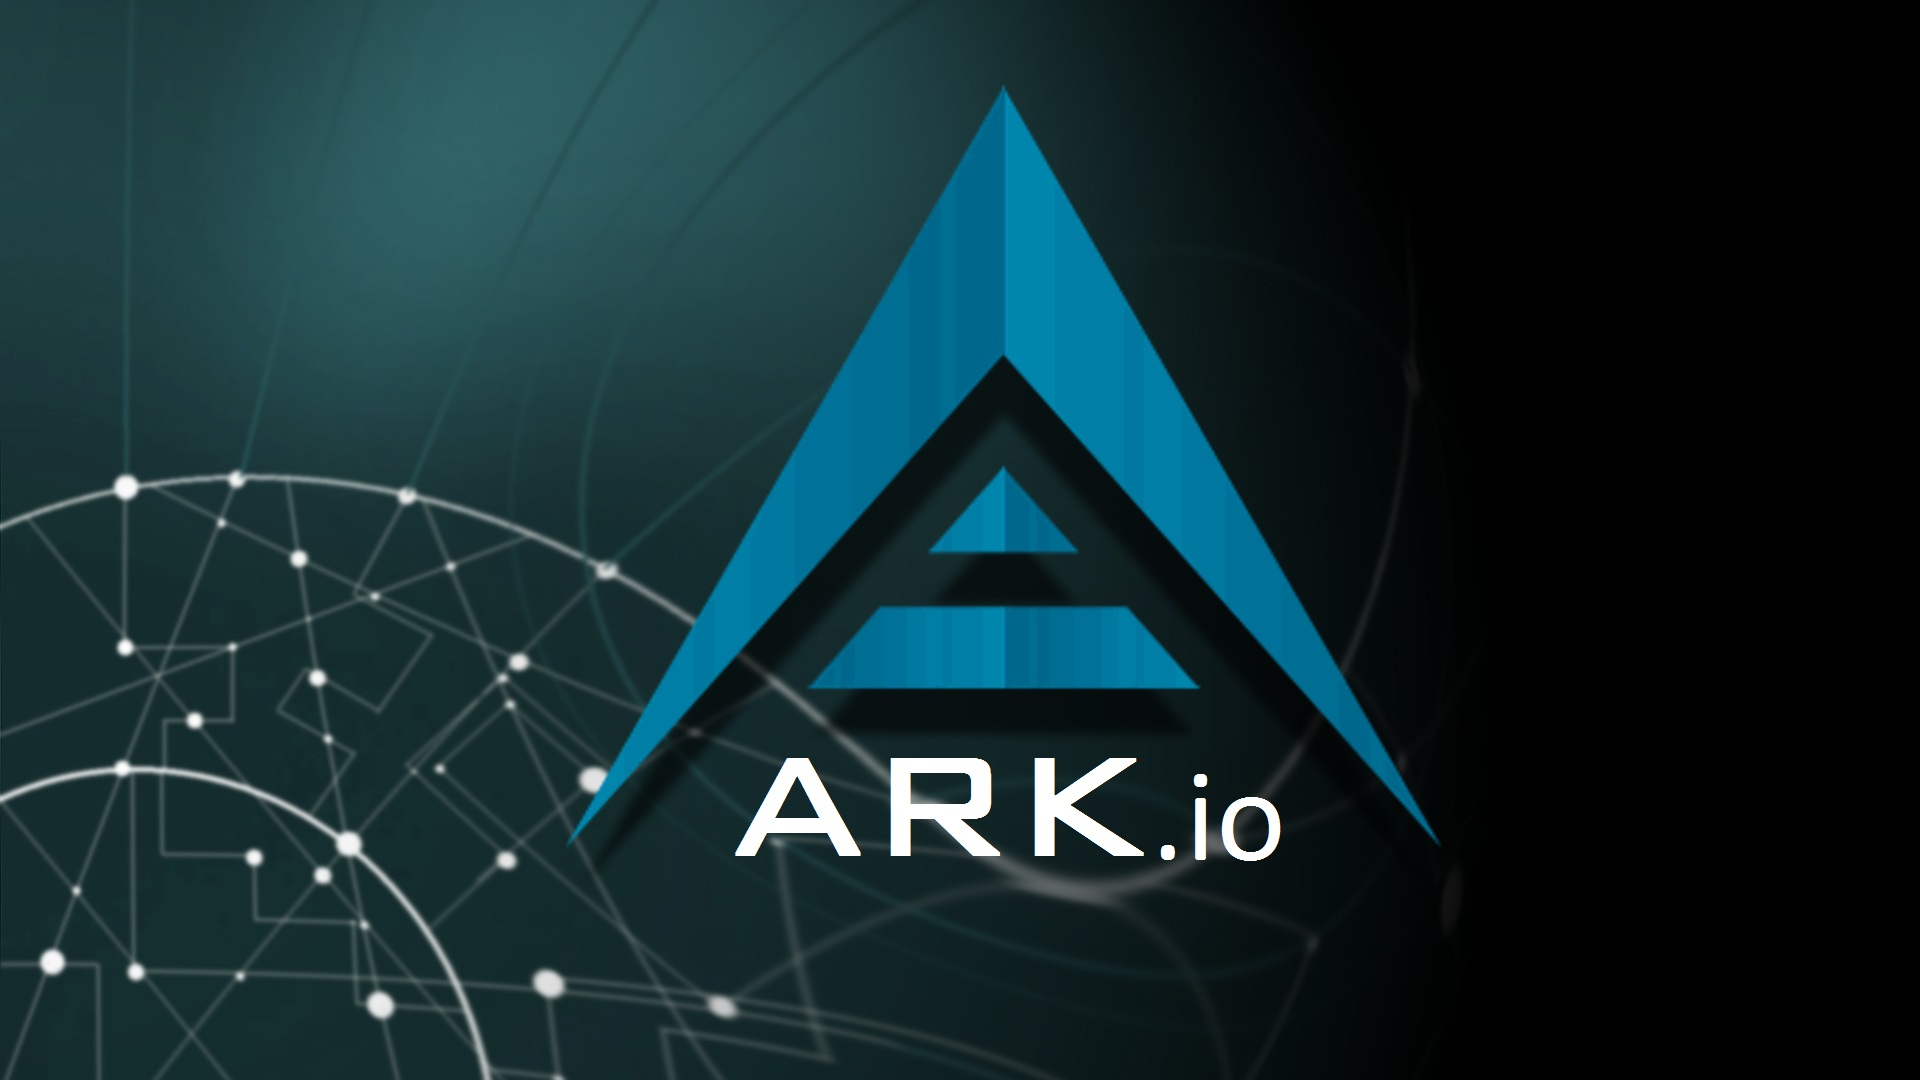 ARK-No-1920x1080-wallpaper-wp3602700